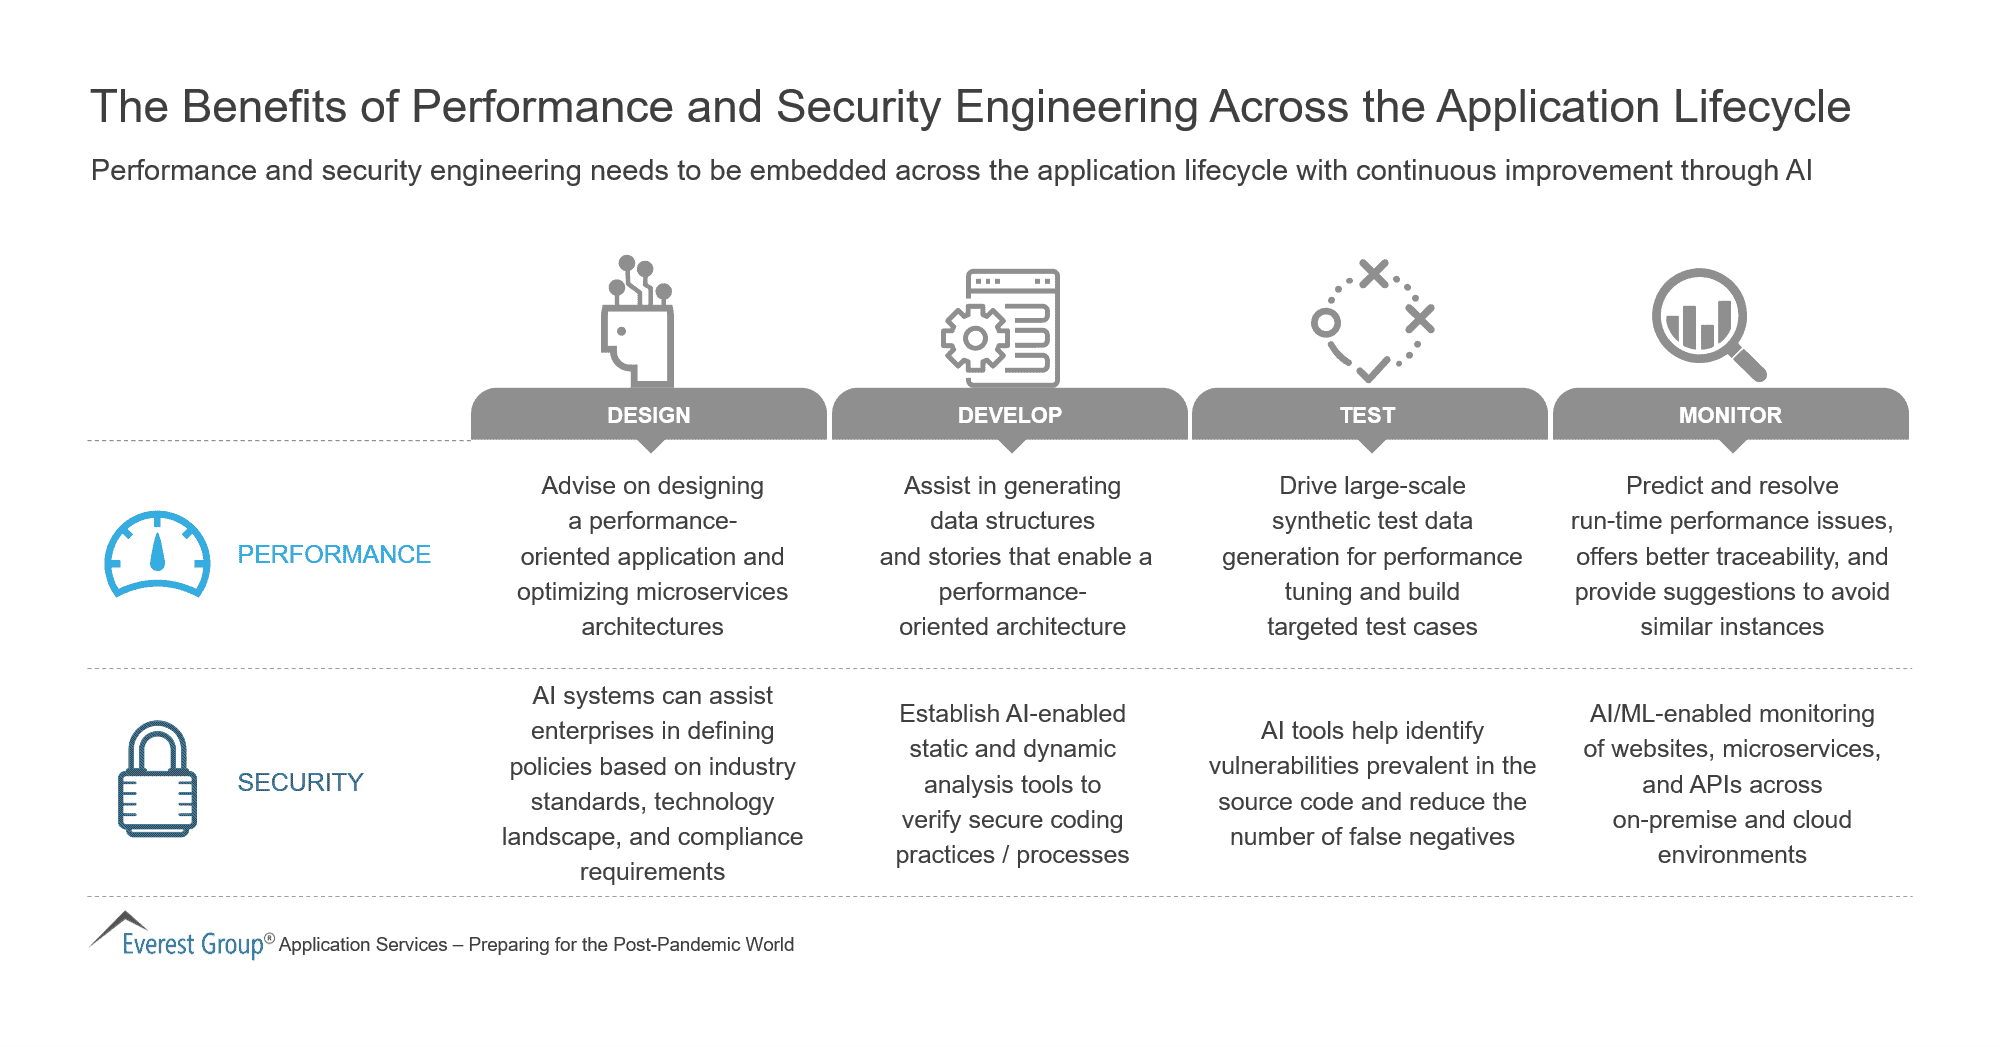 The Benefits of Performance and Security Engineering Across the Application Lifecycle